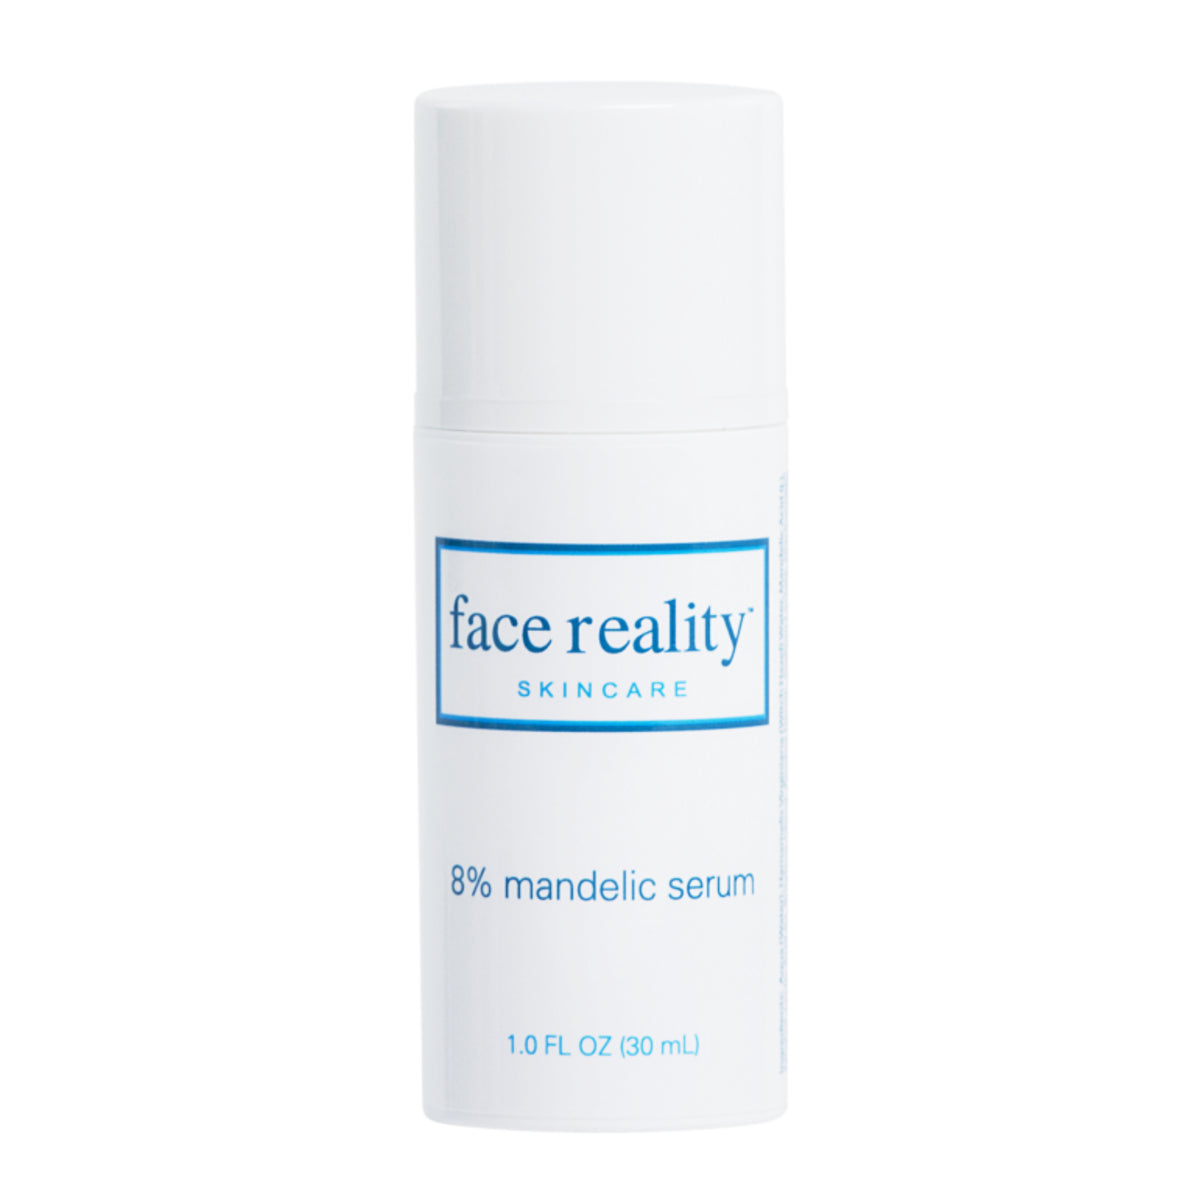 FACE REALITY - Mandelic Serum 8% - Beauty Nook